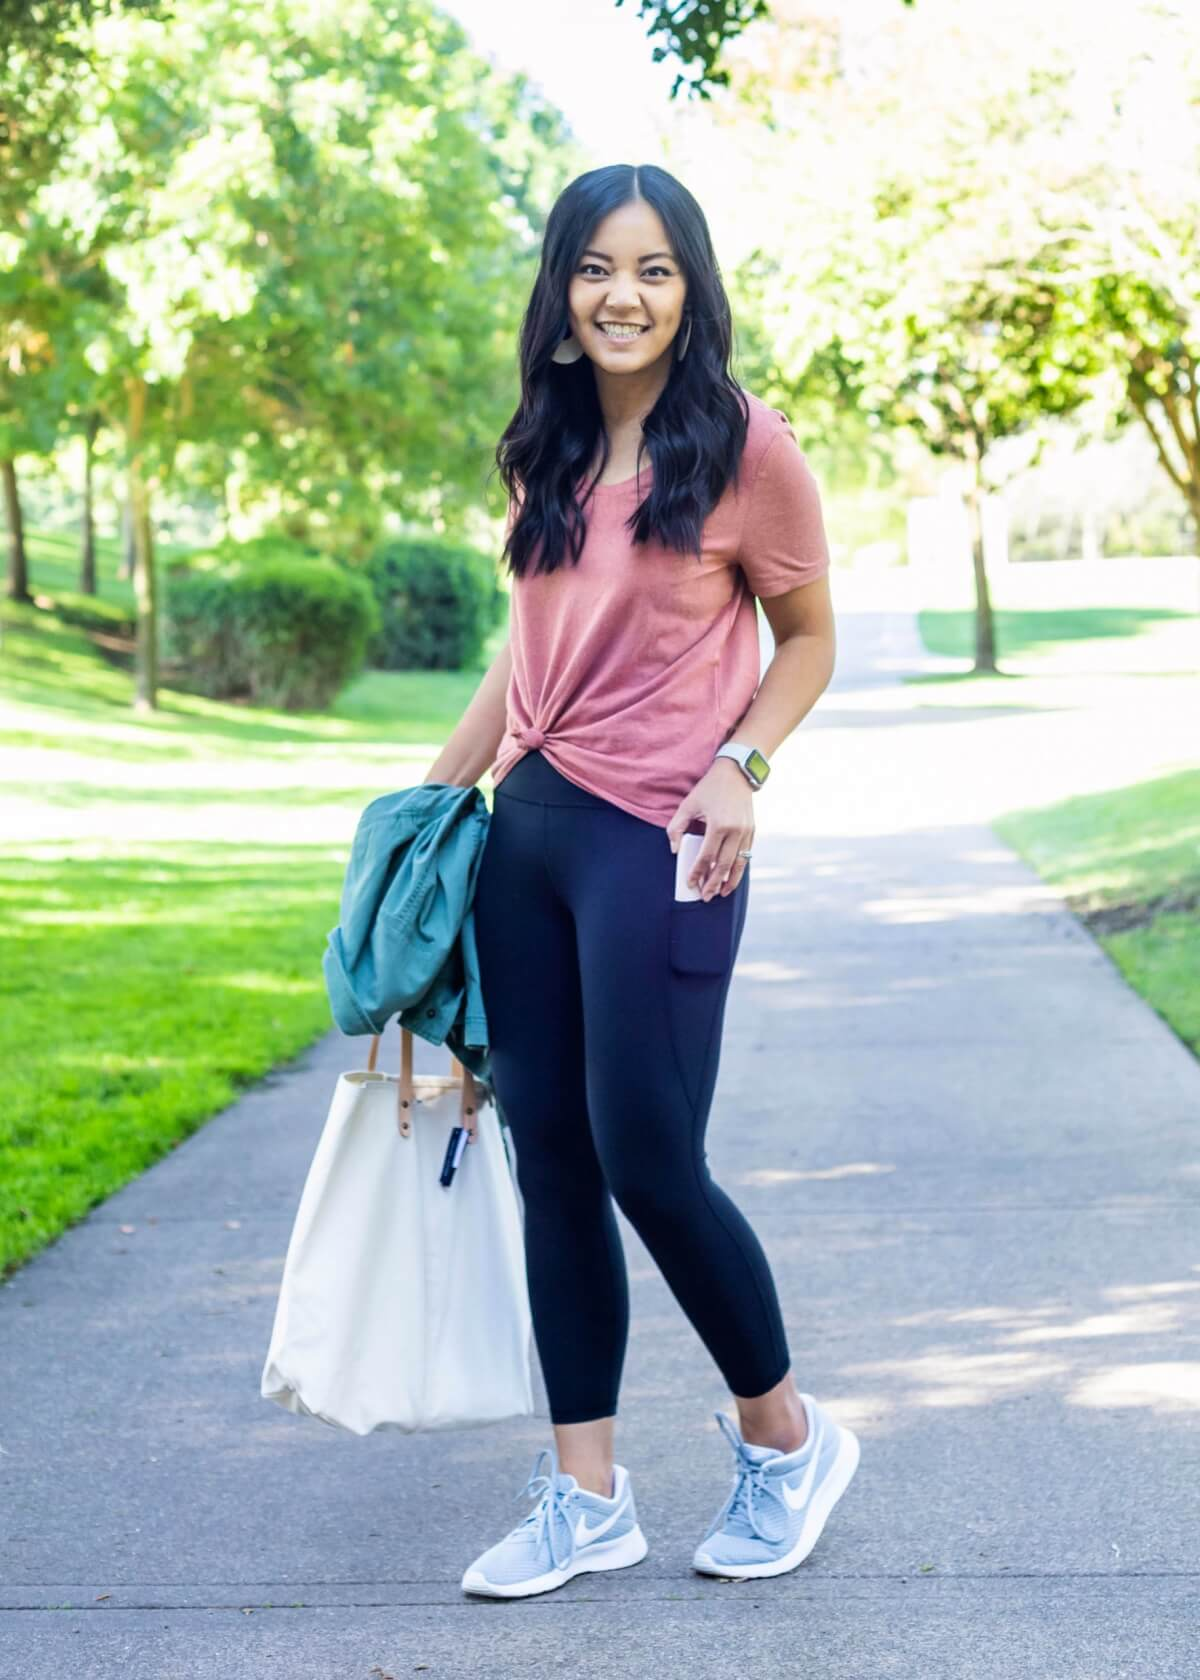 Casual Fall Outfit: dusty pink tee + black pocket leggings + green utility jacket + gray sneakers + white canvas tote side